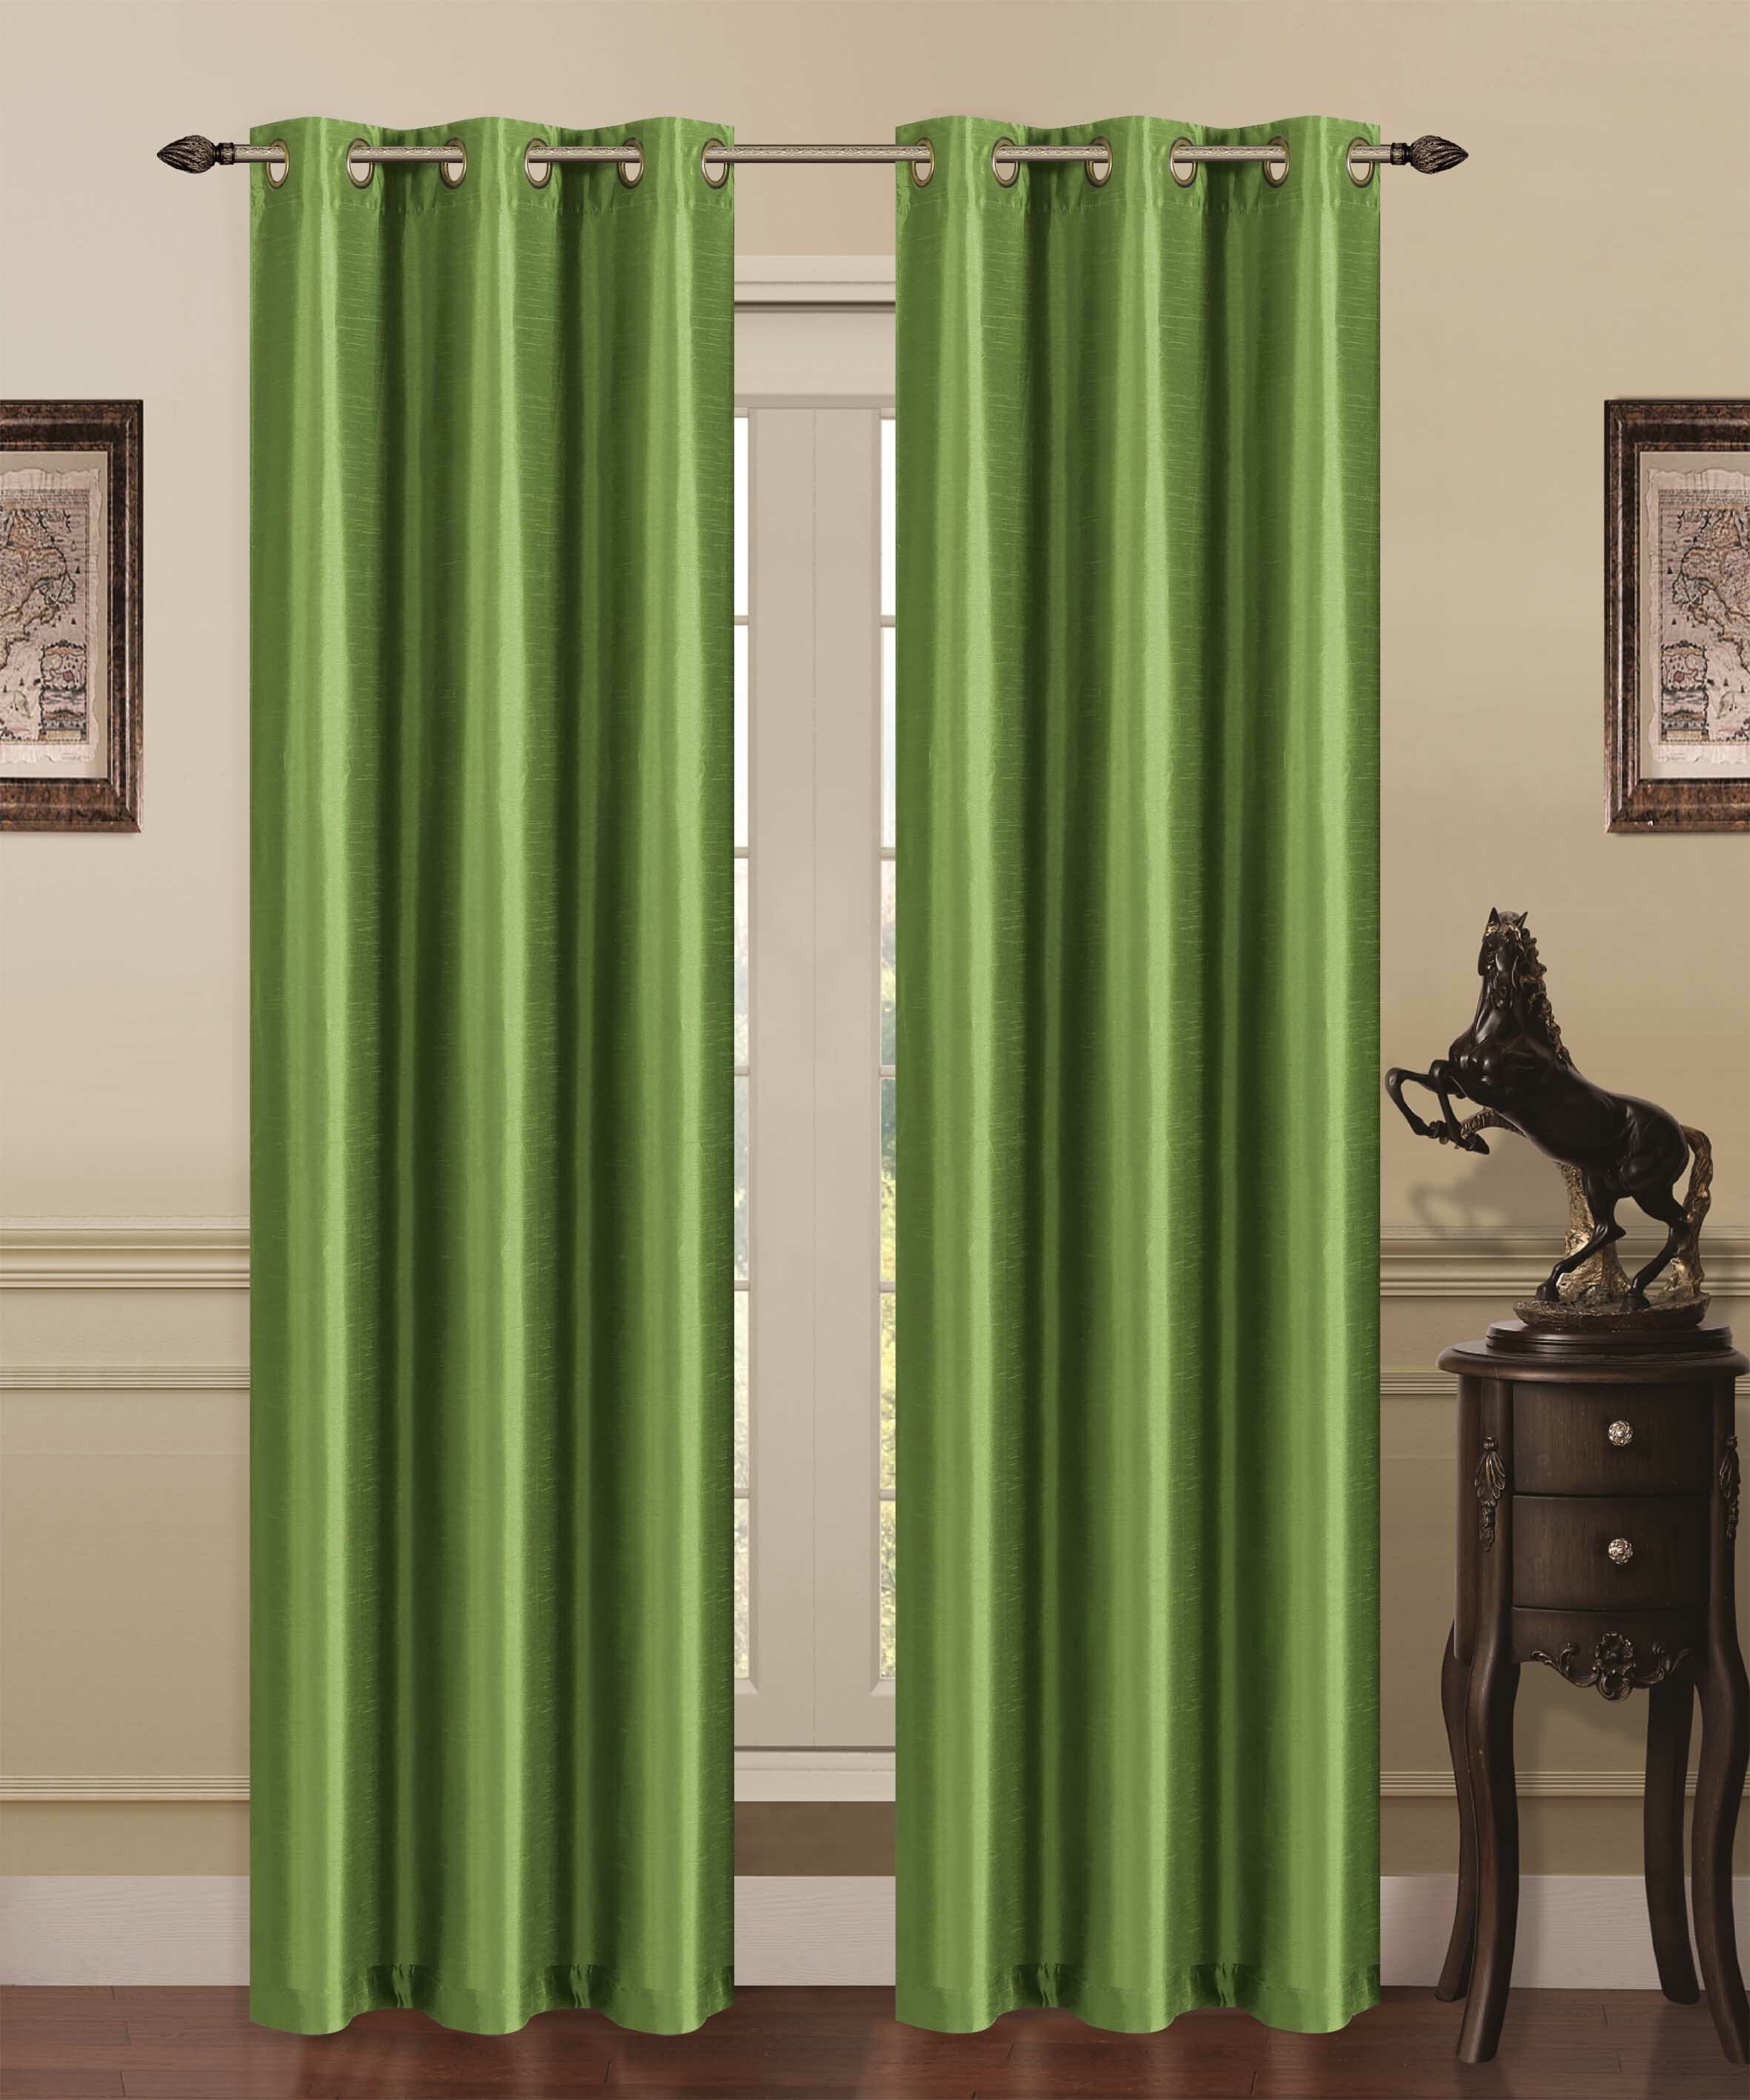 thermal wayfair pdp resistant andover window heat kuhlmann geometric treatments grommet reviews curtains panels curtain blackout ca lattice mills